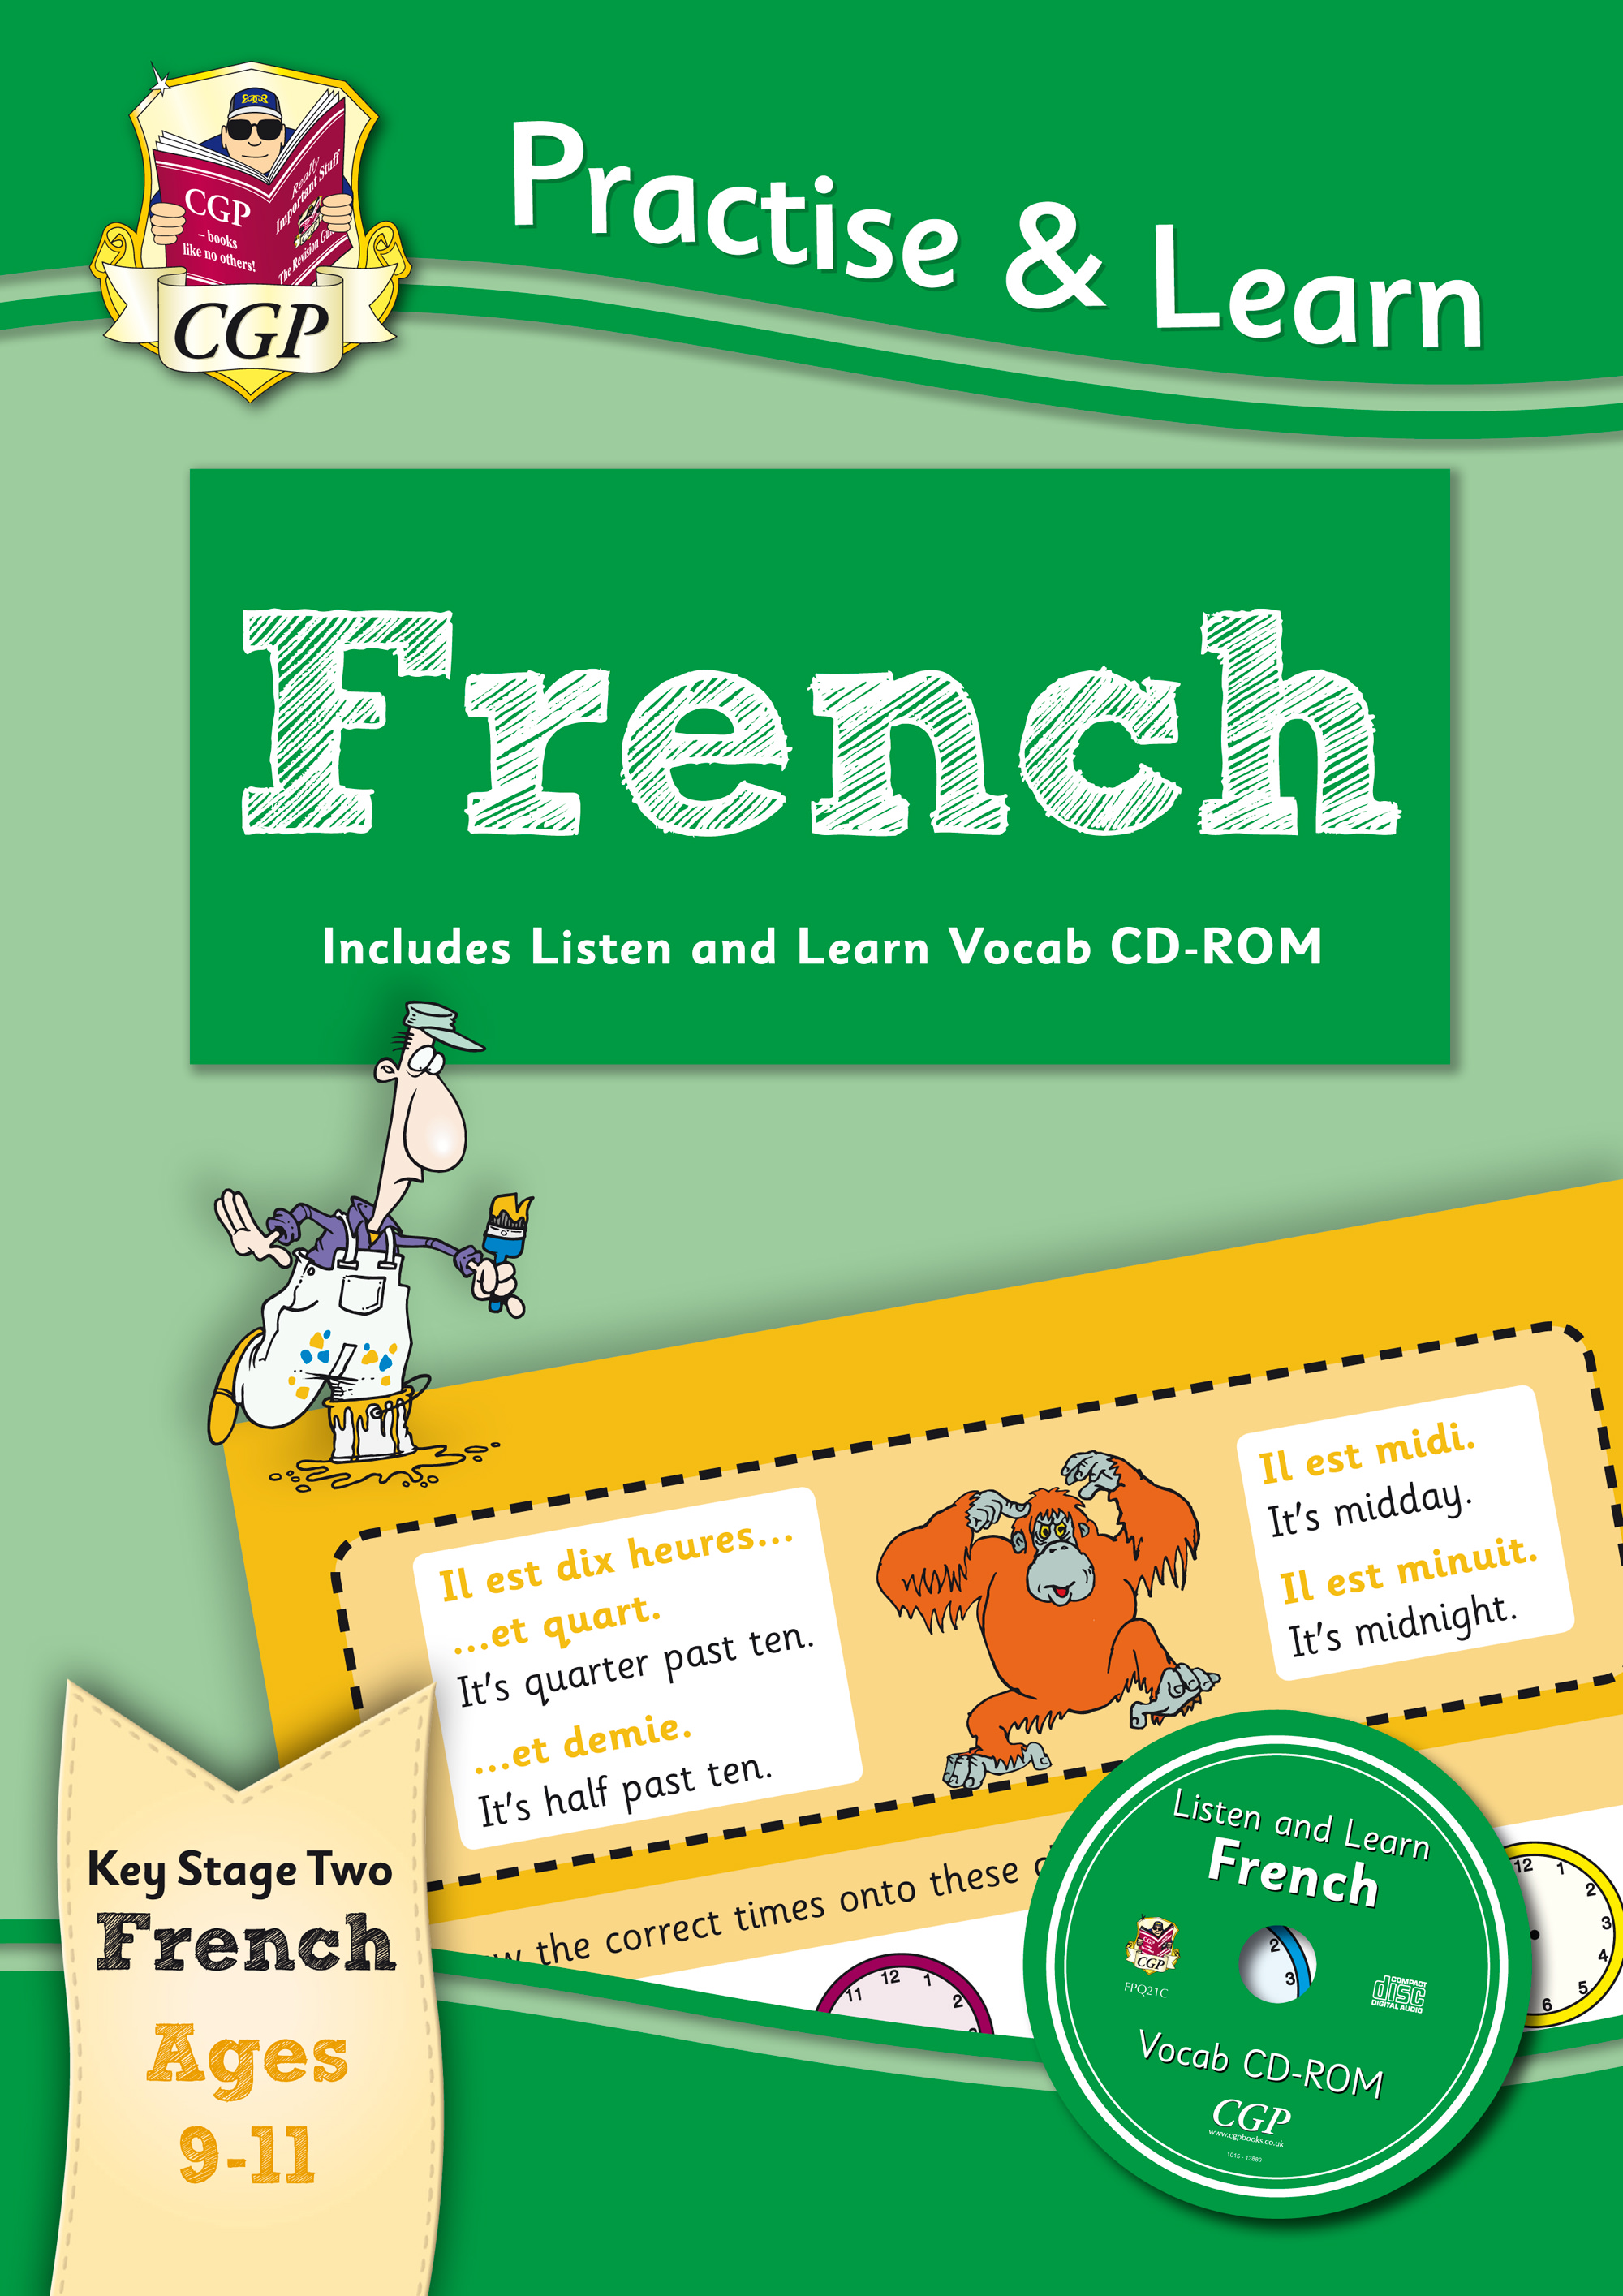 FP6Q22 - Practise & Learn: French for Ages 9-11 - with vocab CD-ROM